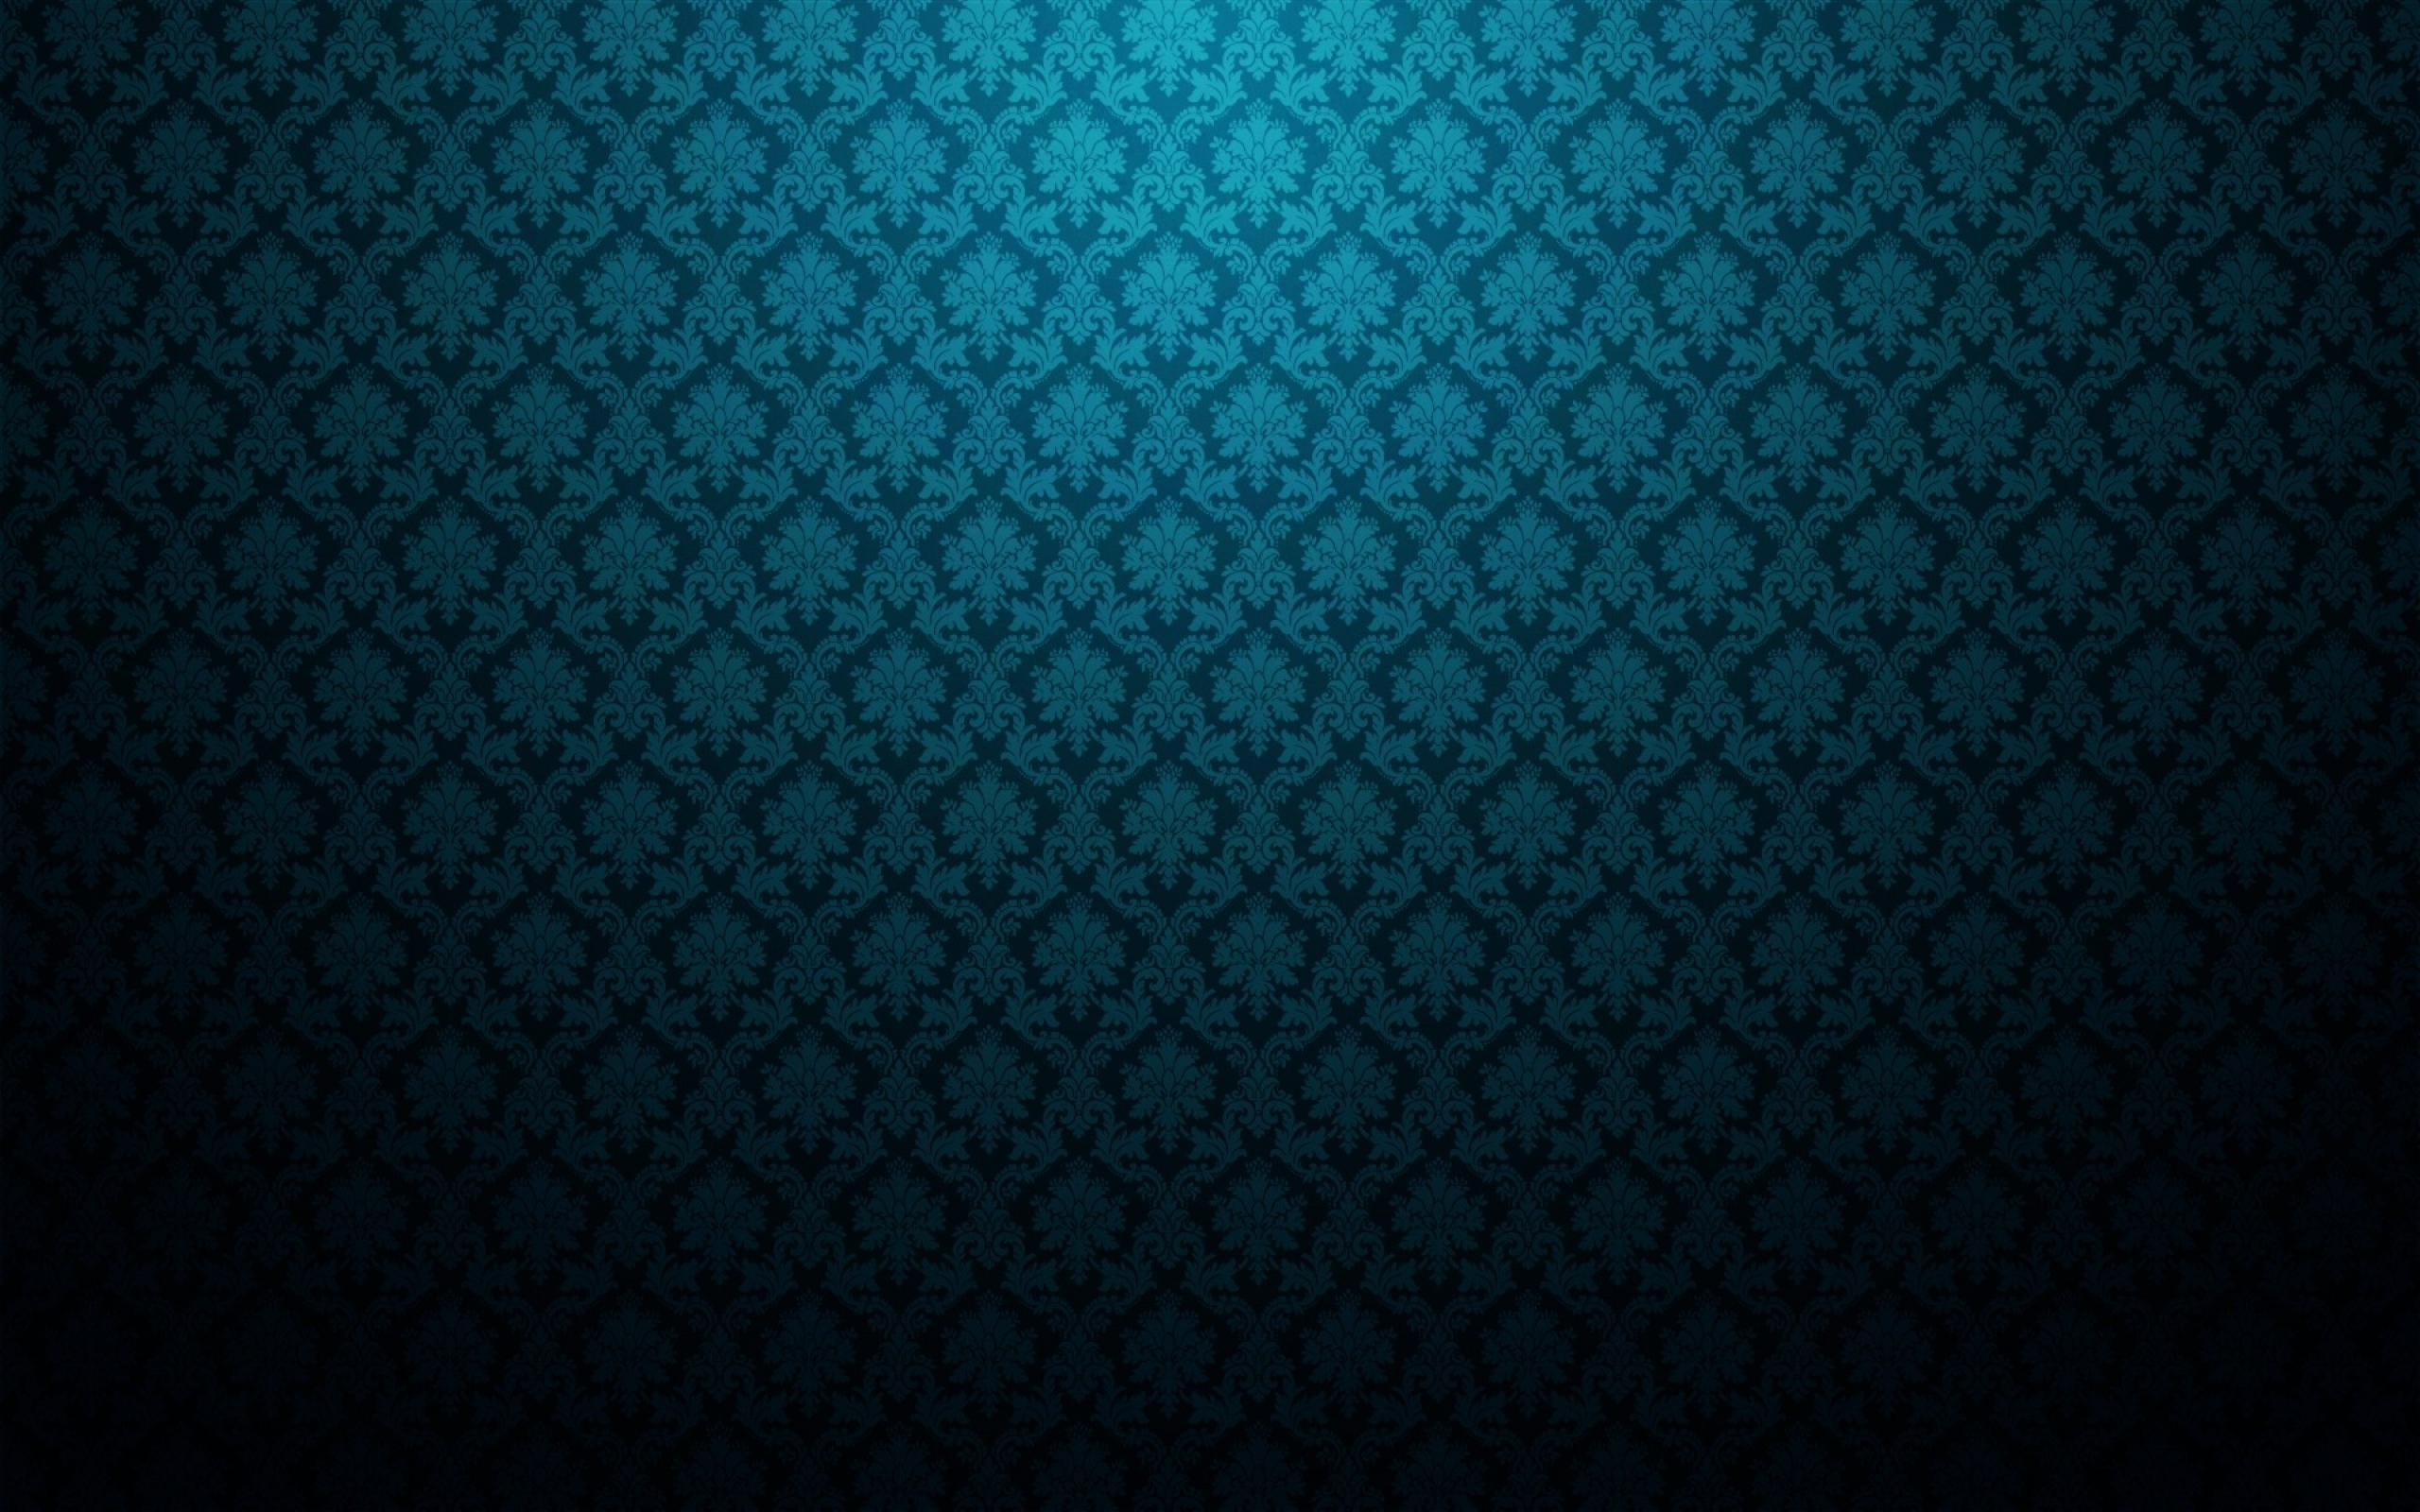 Android wallpaper - Cool Blue